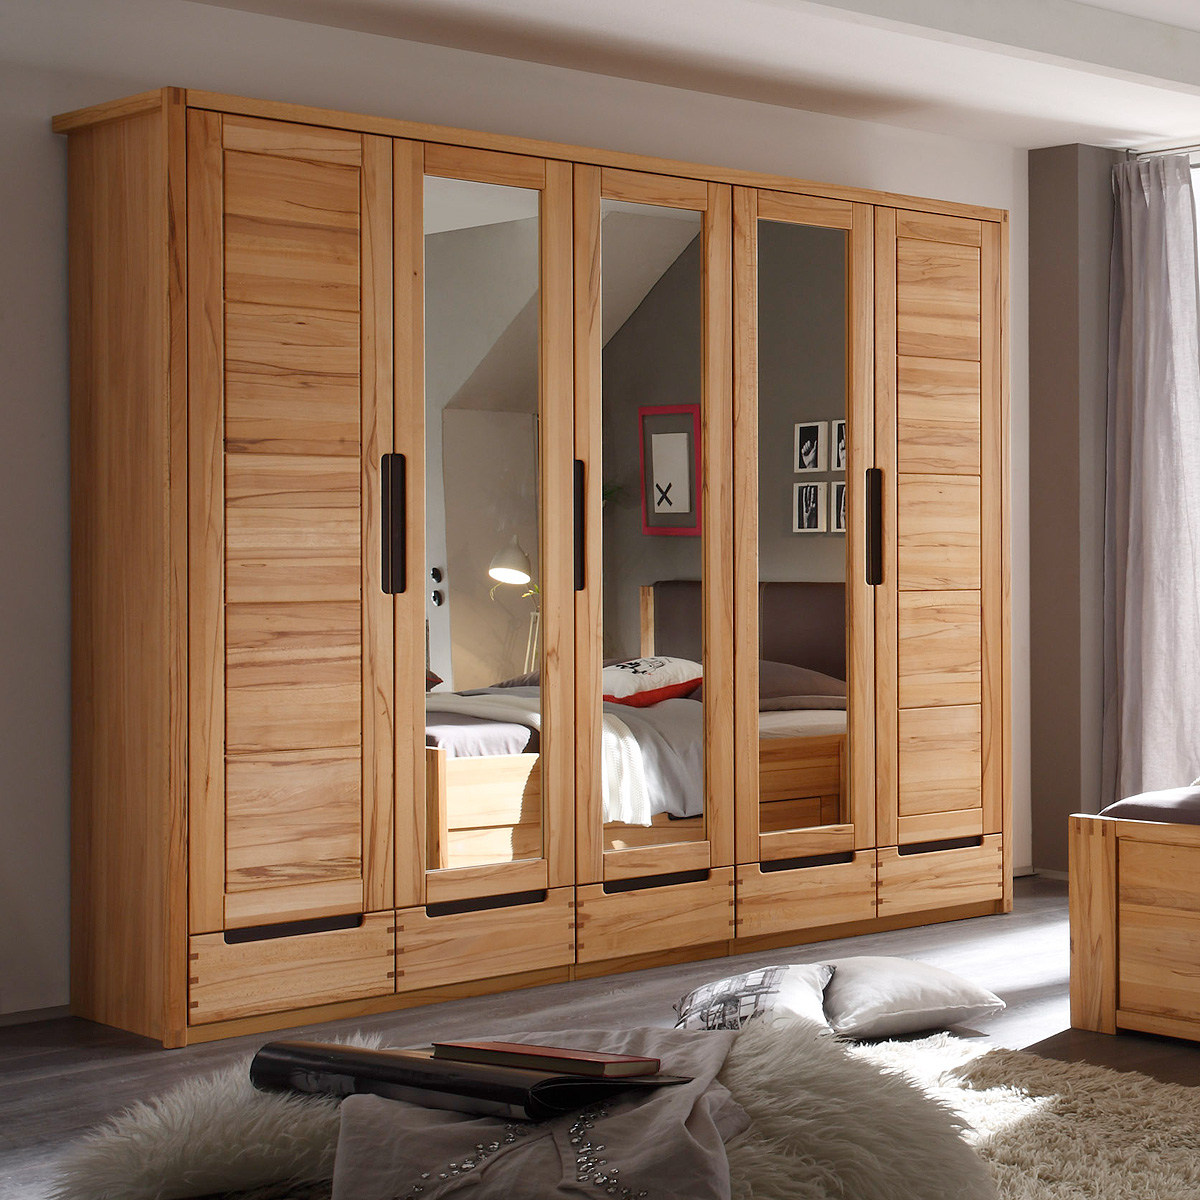 kleiderschrank colorado schrank schlafzimmerschrank kernbuche teilmassiv spiegel ebay. Black Bedroom Furniture Sets. Home Design Ideas